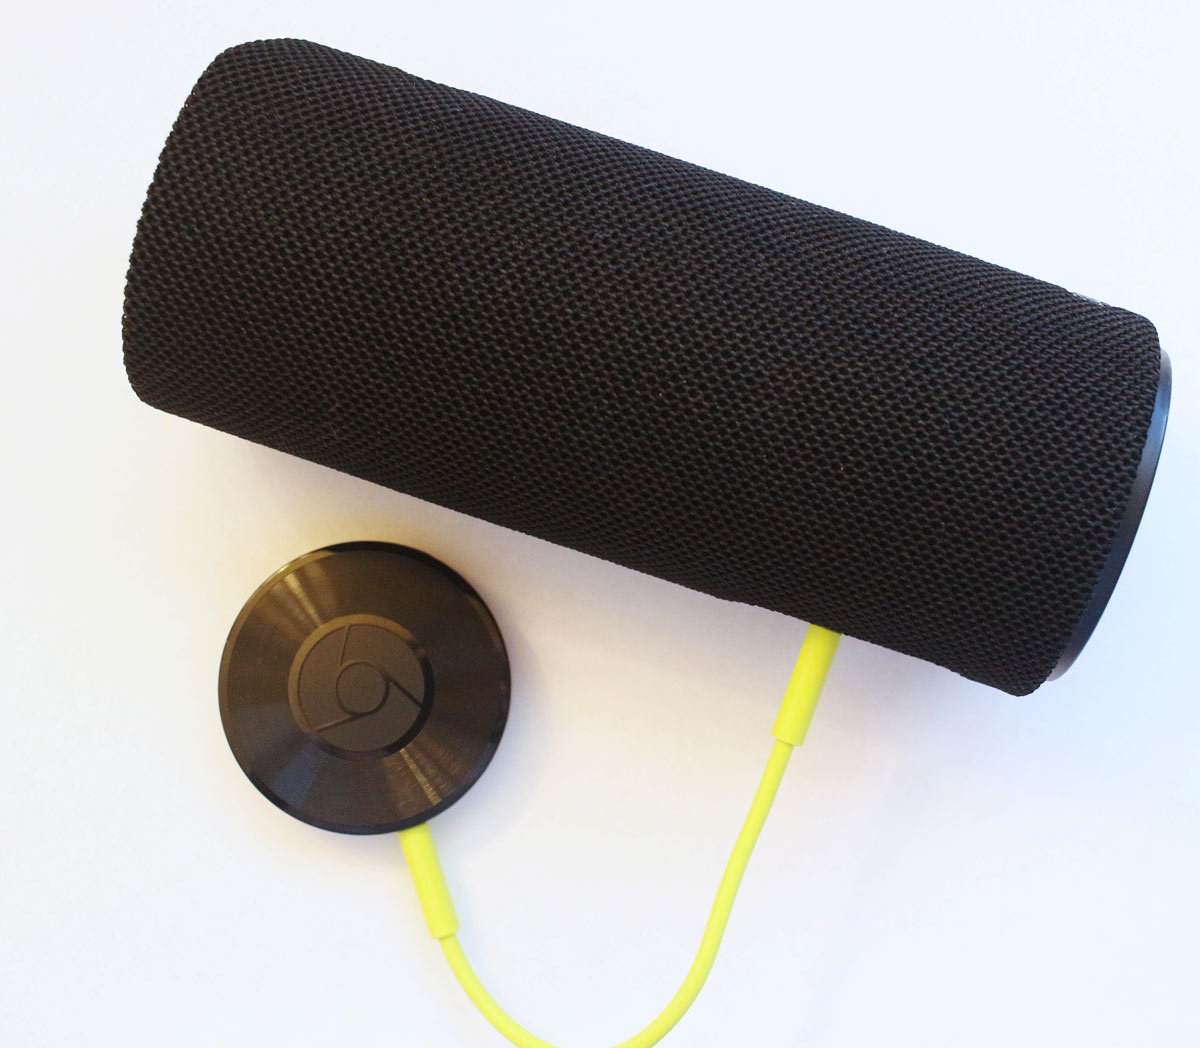 Chromecast Audio connected to a bluetooth speaker. Chromecast Audio available at Best Buy.